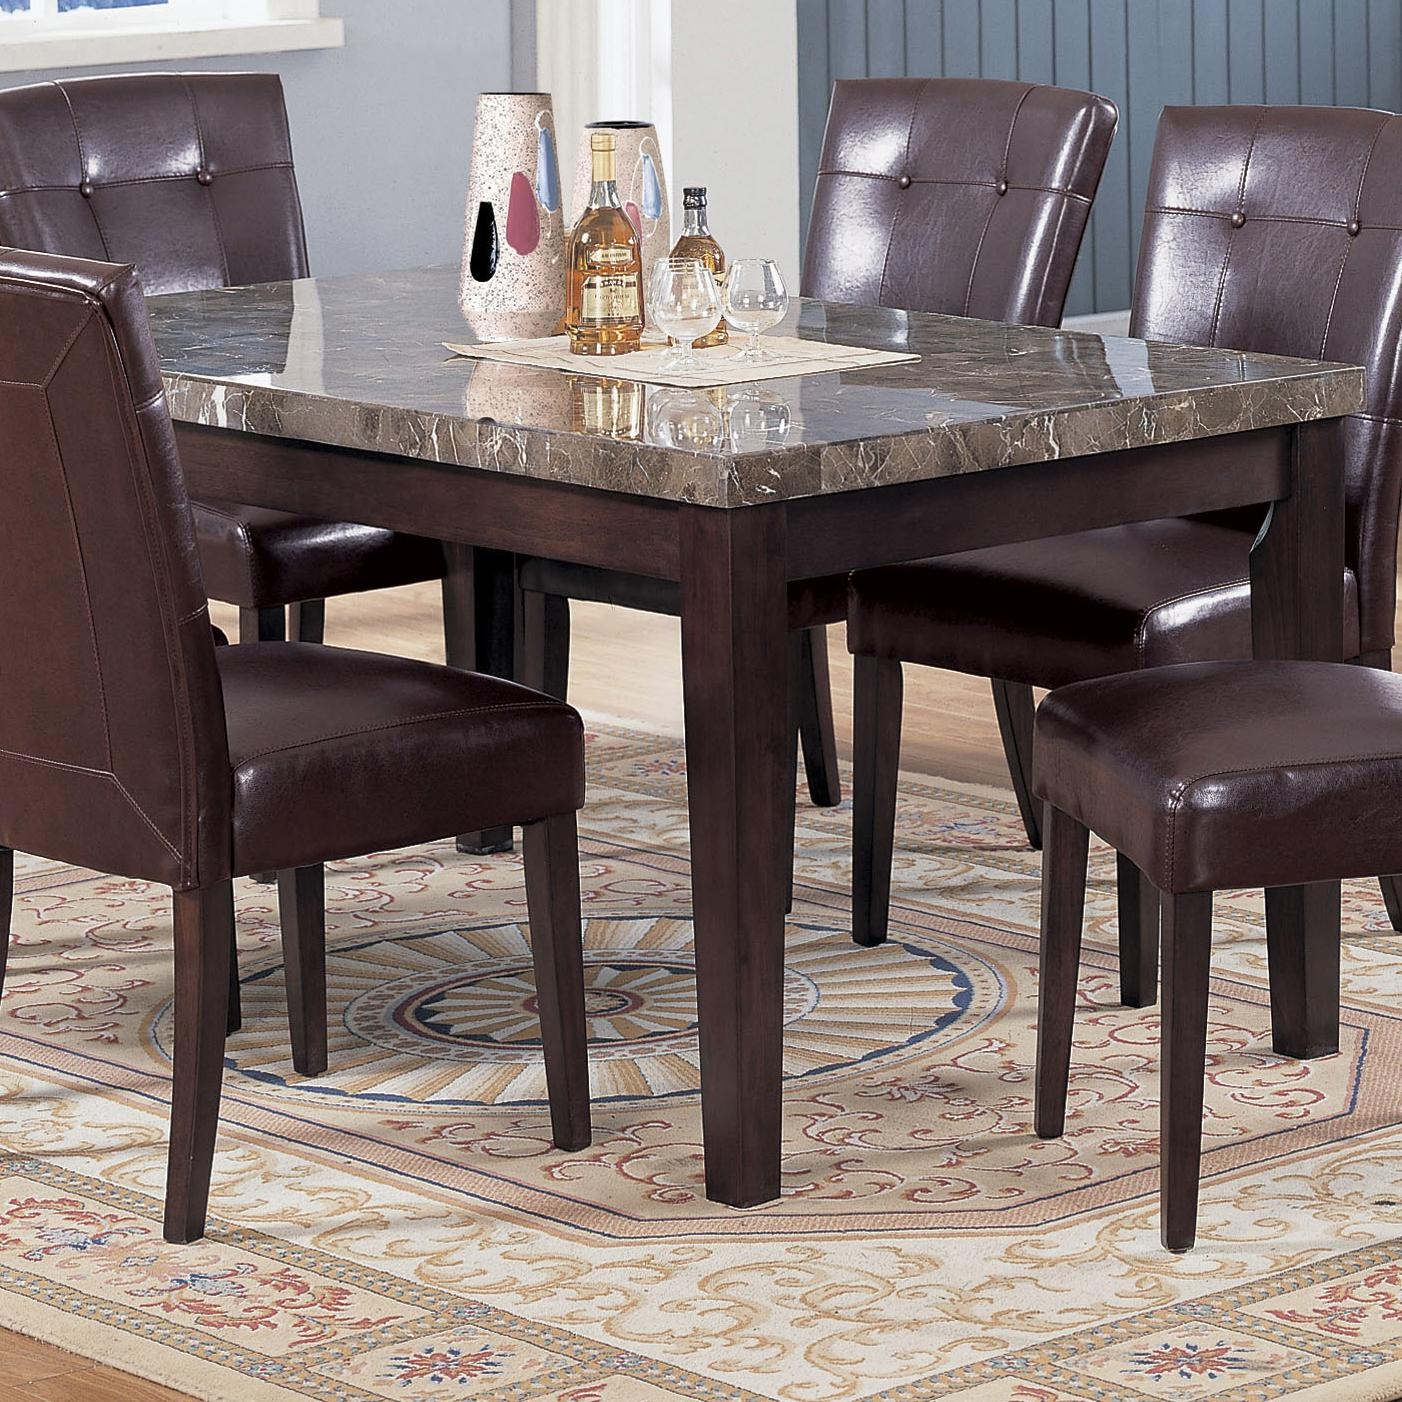 acme furniture 7058 rectangular dining table with black marble top dream home furniture. Black Bedroom Furniture Sets. Home Design Ideas